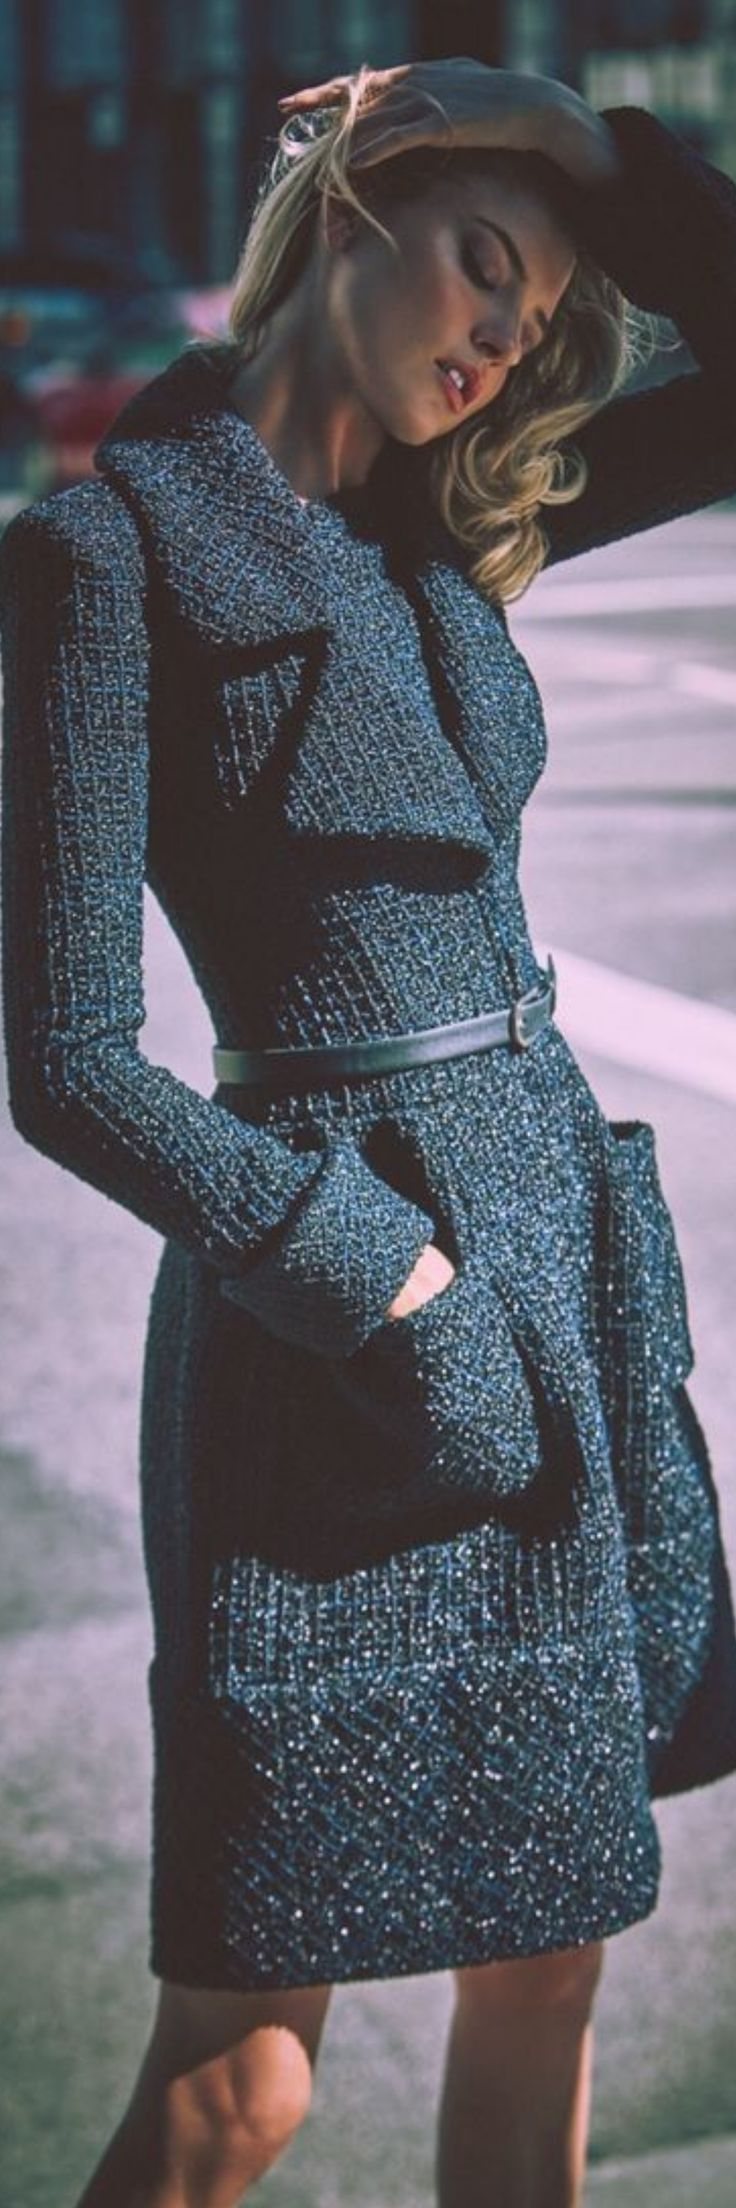 Find More at => http://feedproxy.google.com/~r/amazingoutfits/~3/-nEk4c-es3U/AmazingOutfits.page